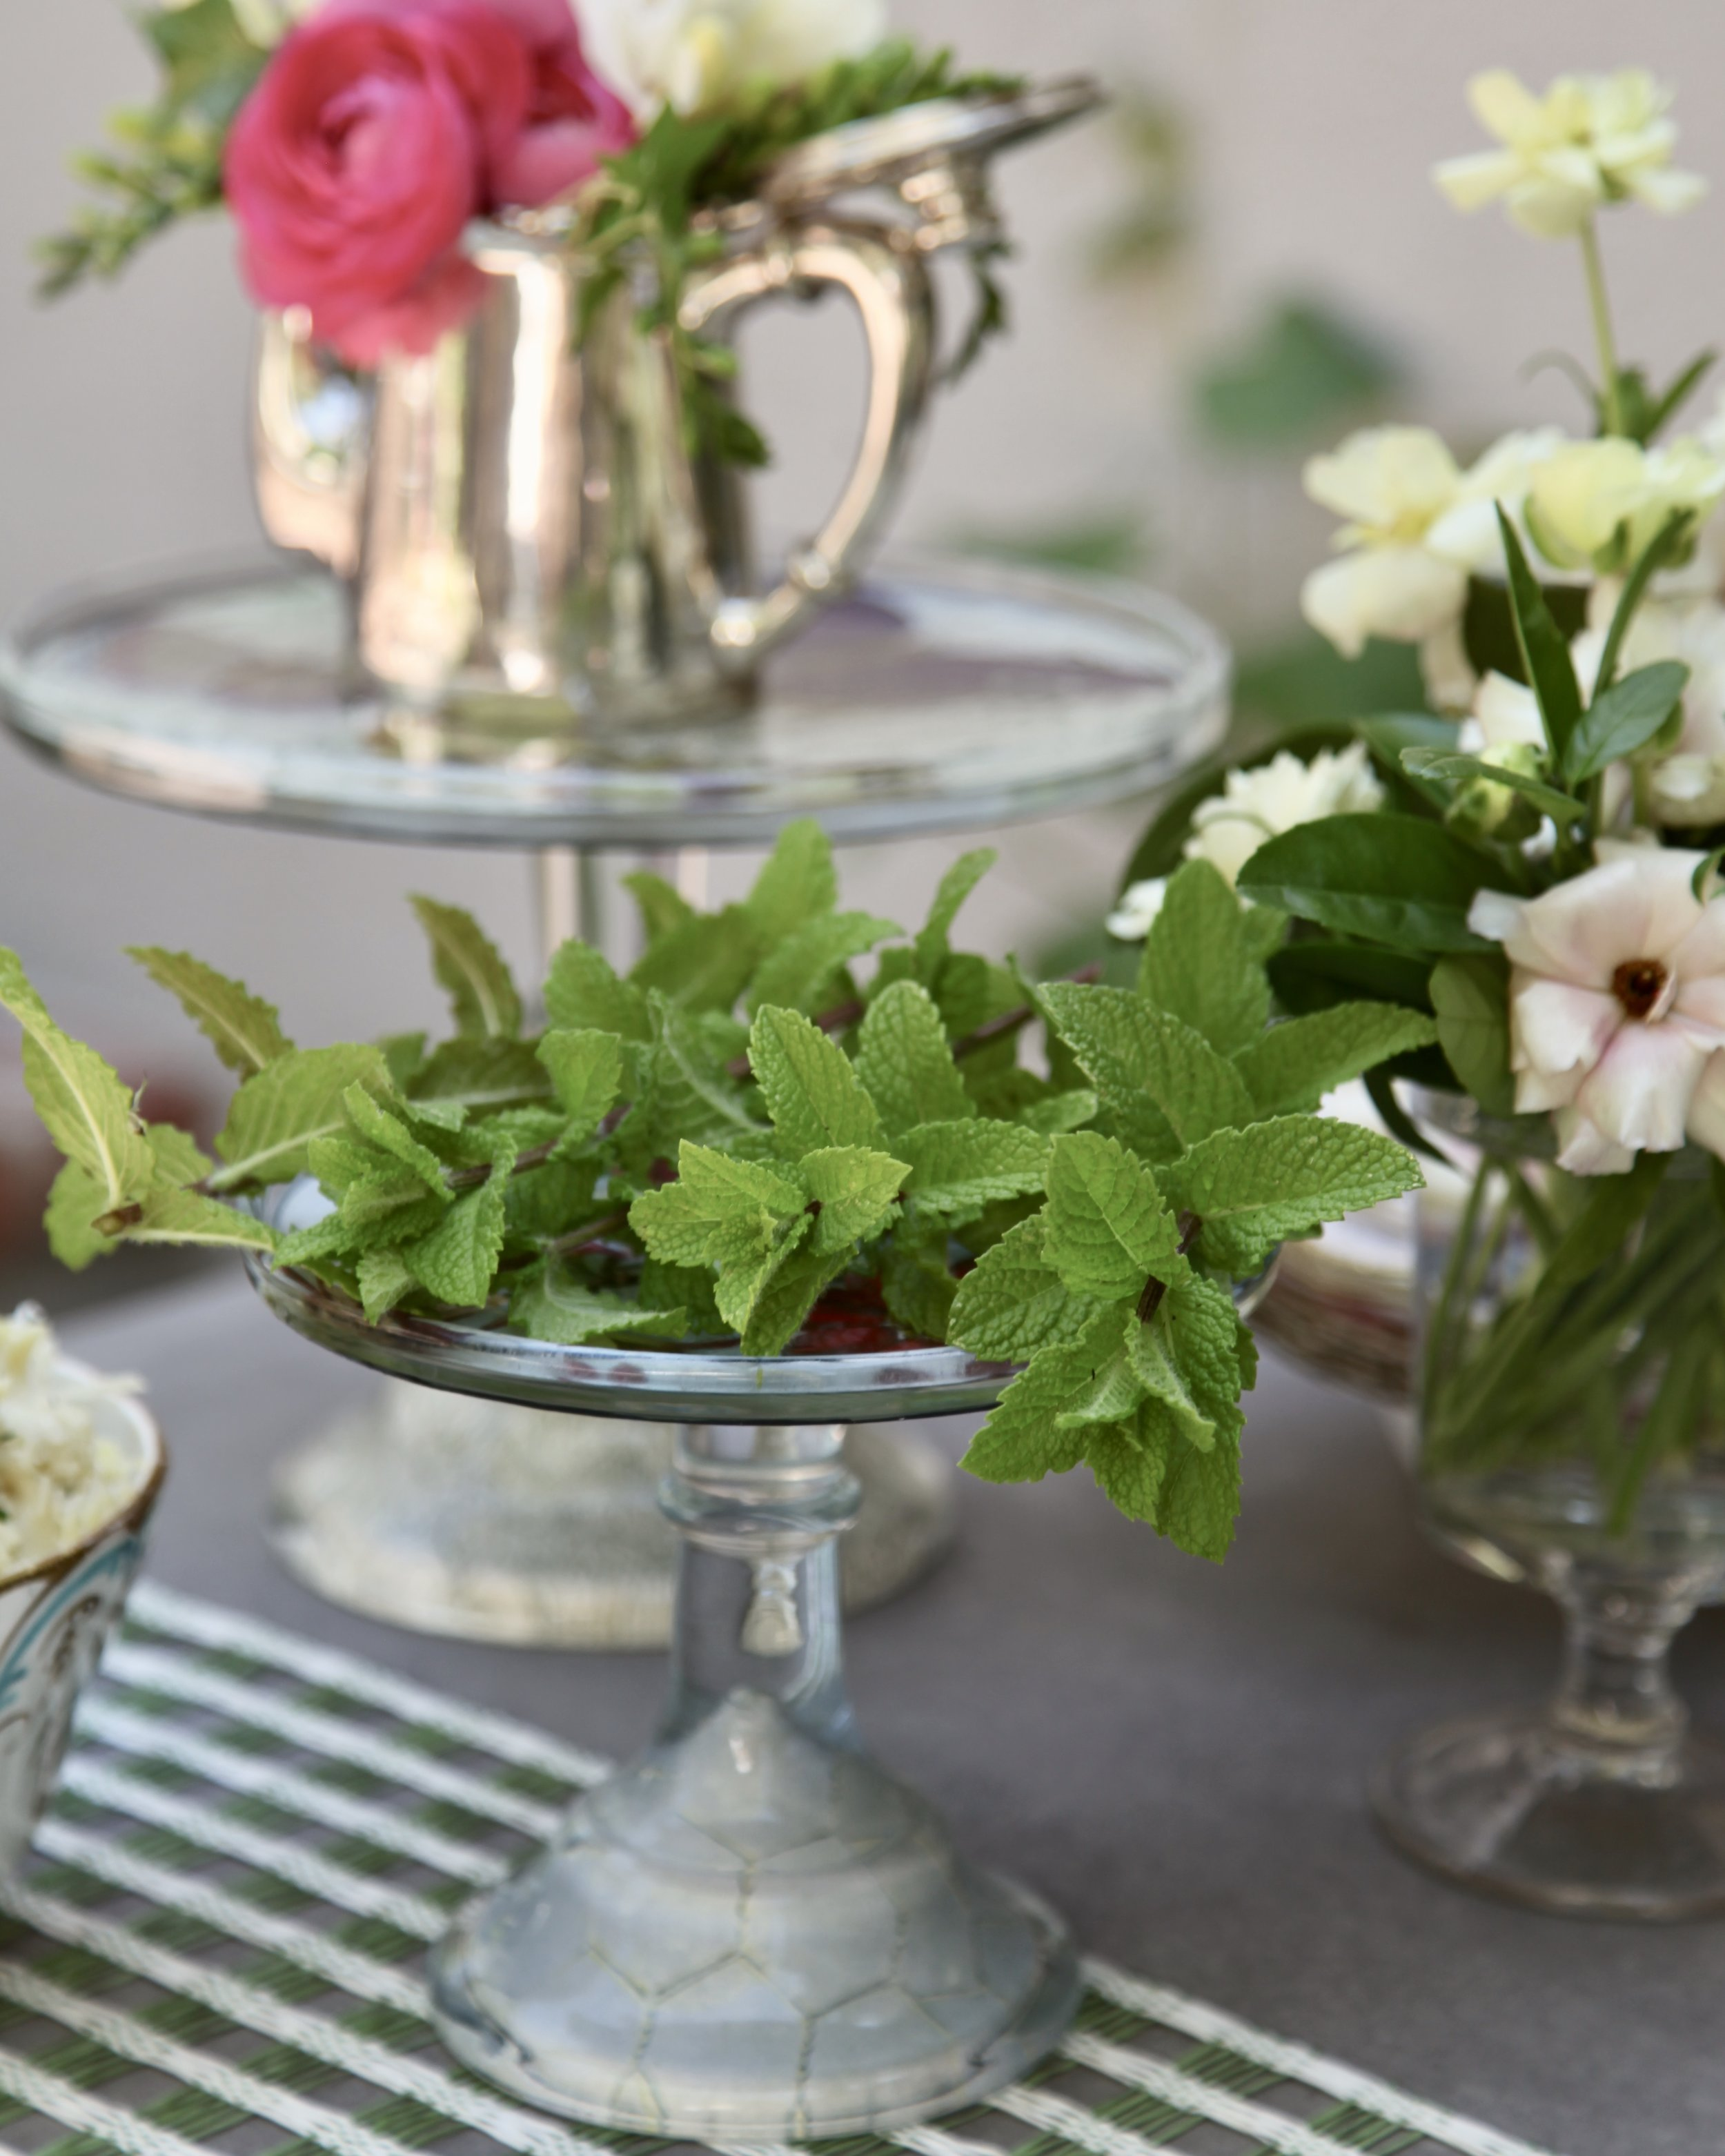 Mint does not wilt easily, so you can simply lay it on a tray or put in water for a longer life.